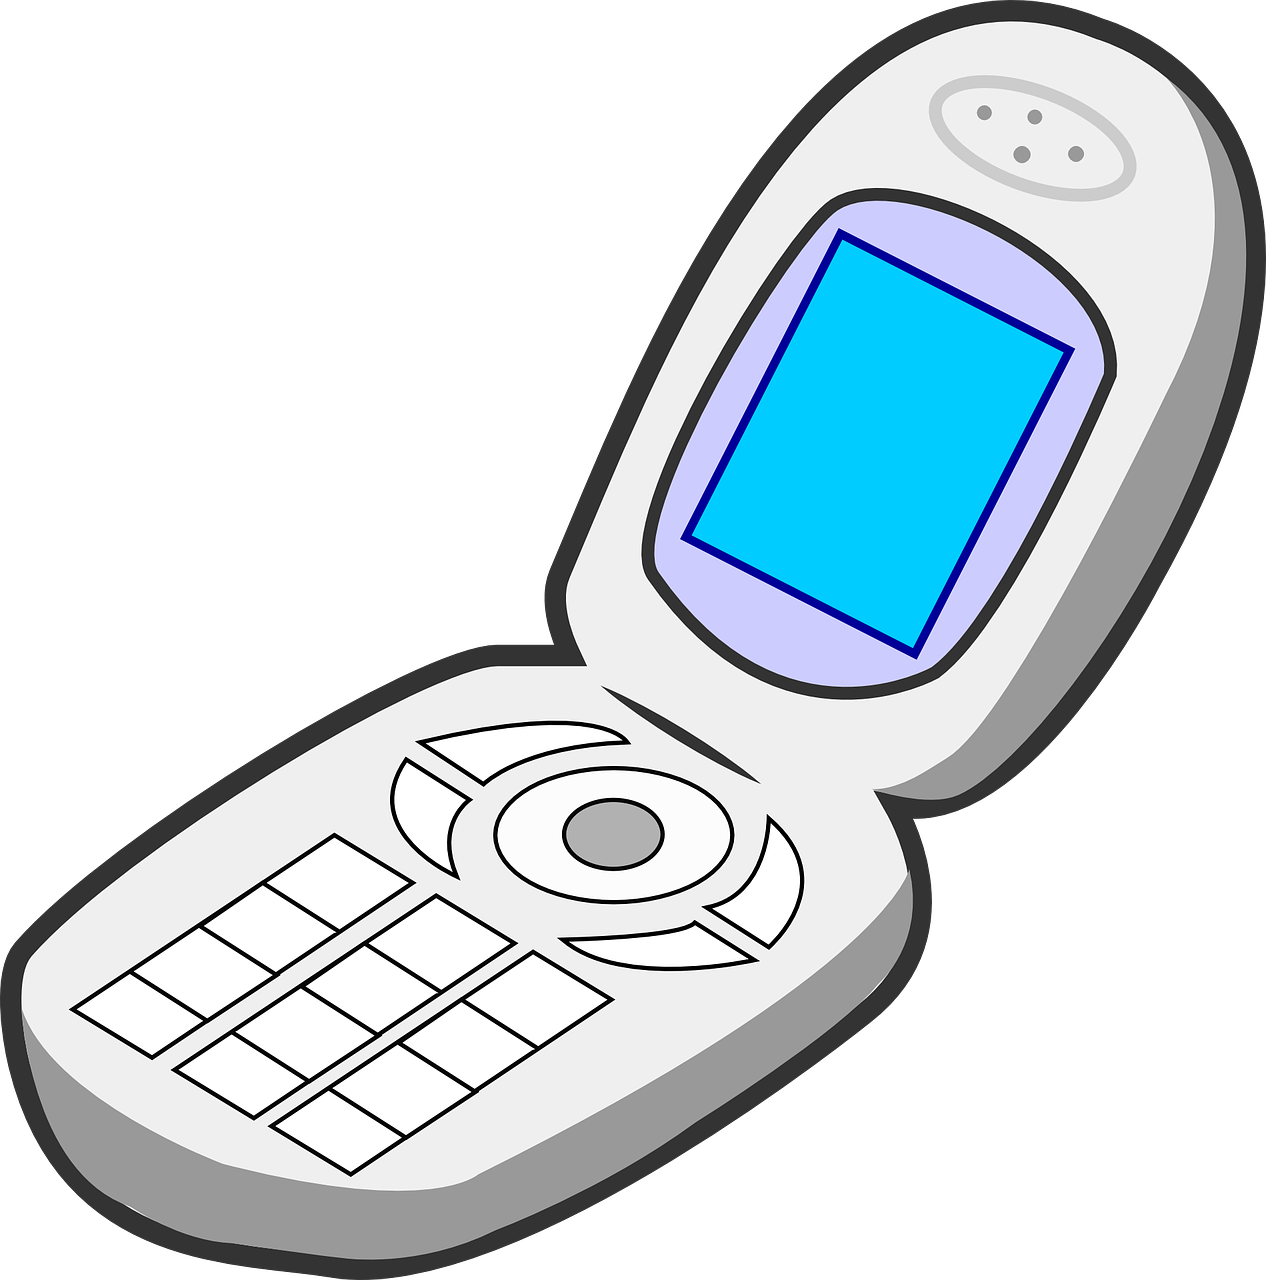 Flip phones for the. Phone clipart corded phone